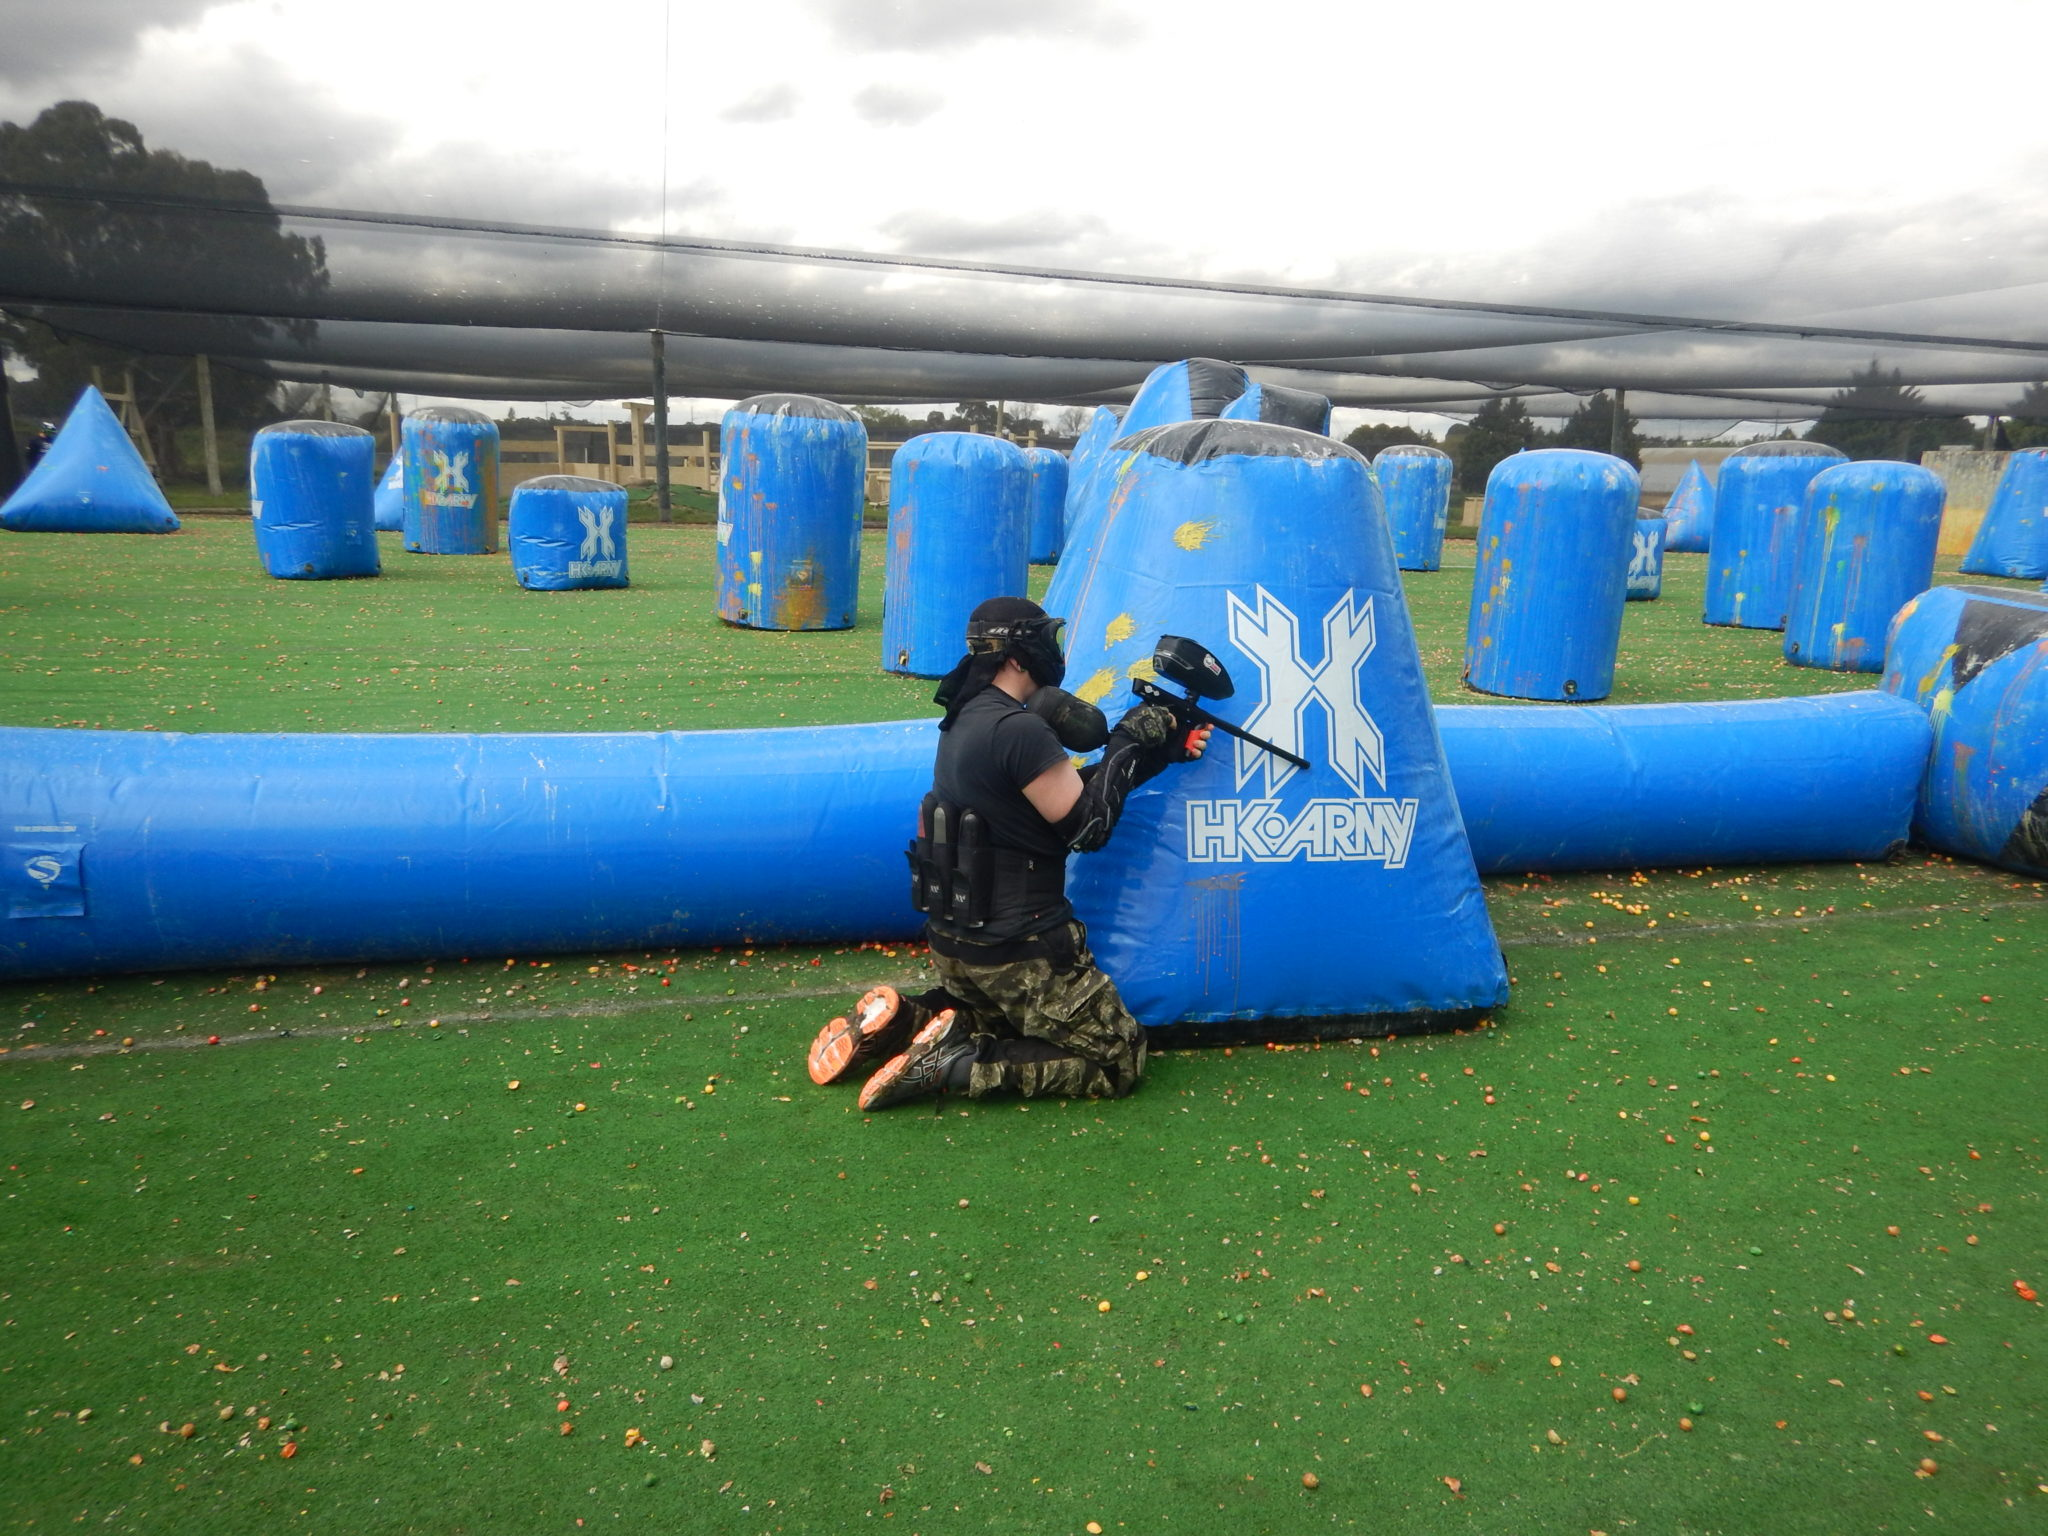 Melbourne Paintball League : Round 1 update